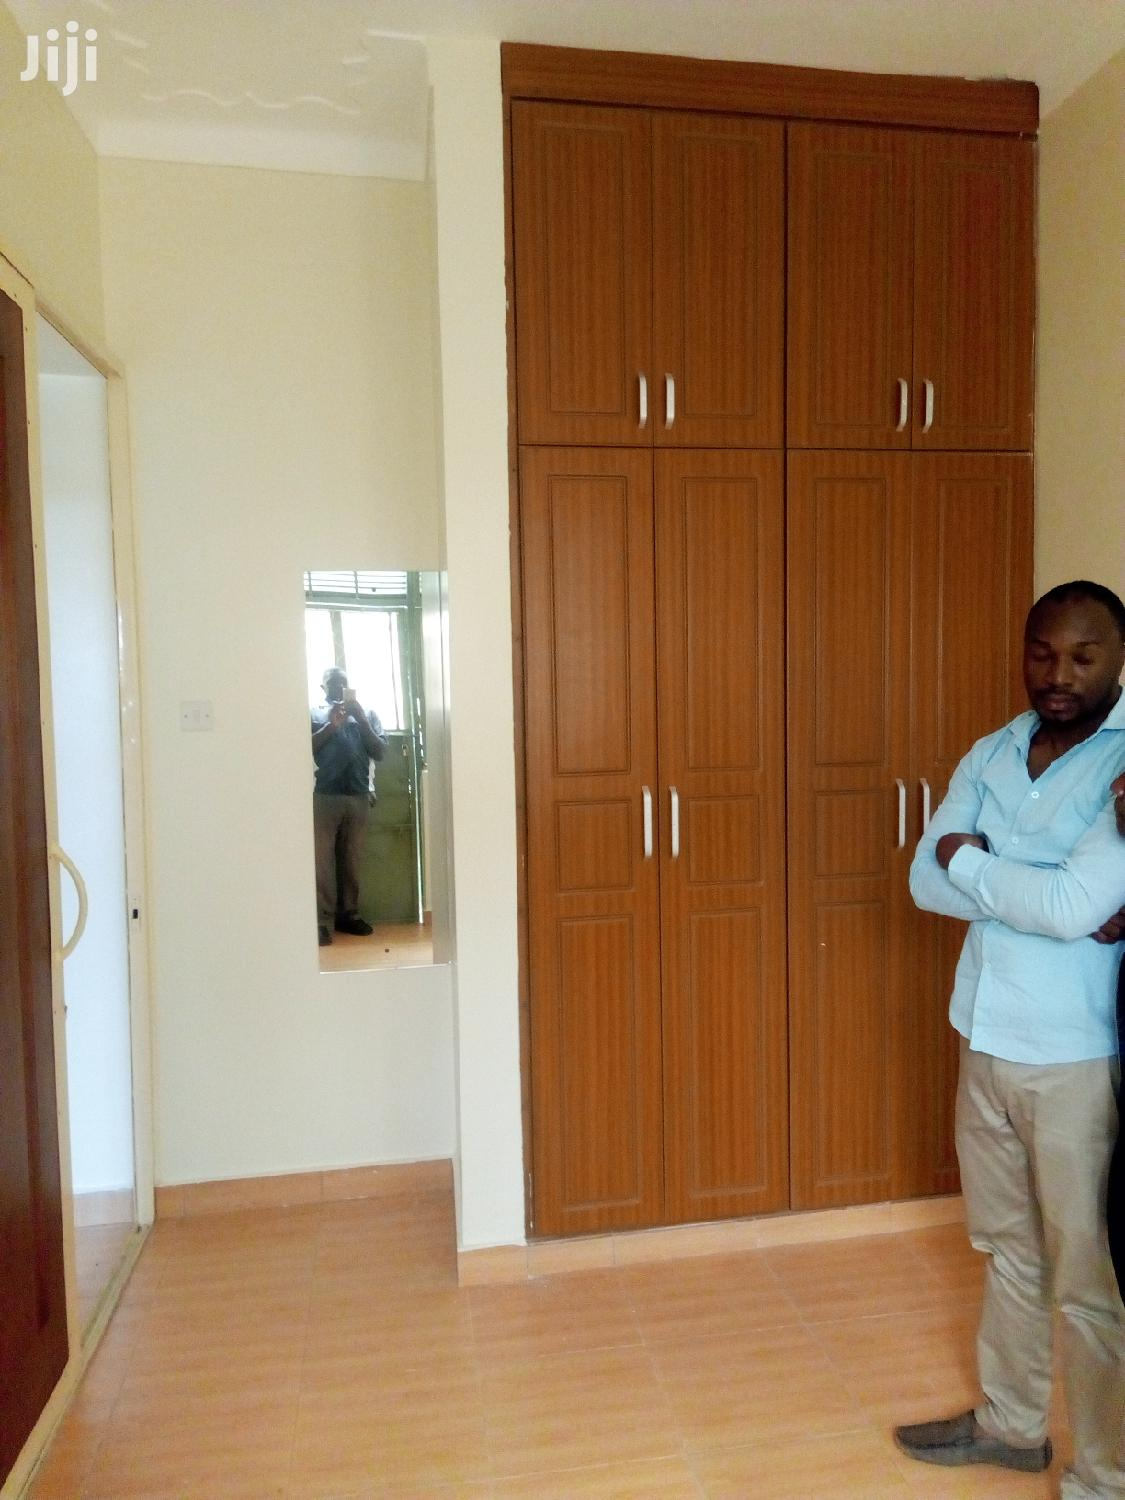 Double Rooms Self Contained In Kisaasi Kyanja Road For Rent | Houses & Apartments For Rent for sale in Kampala, Central Region, Uganda